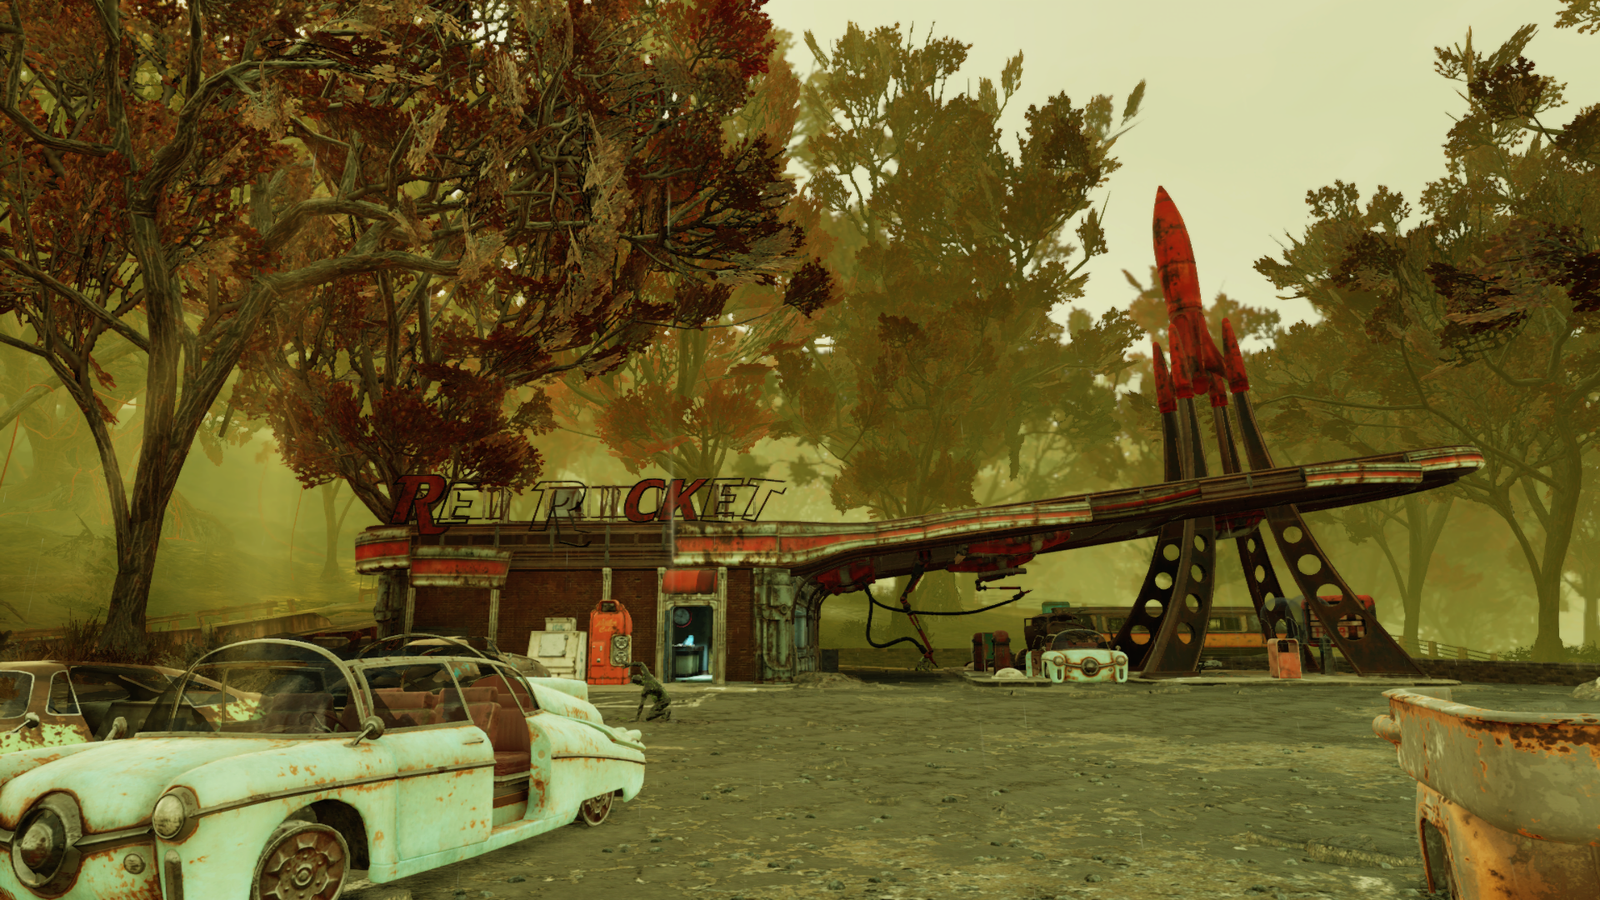 The Red Rocket diner.